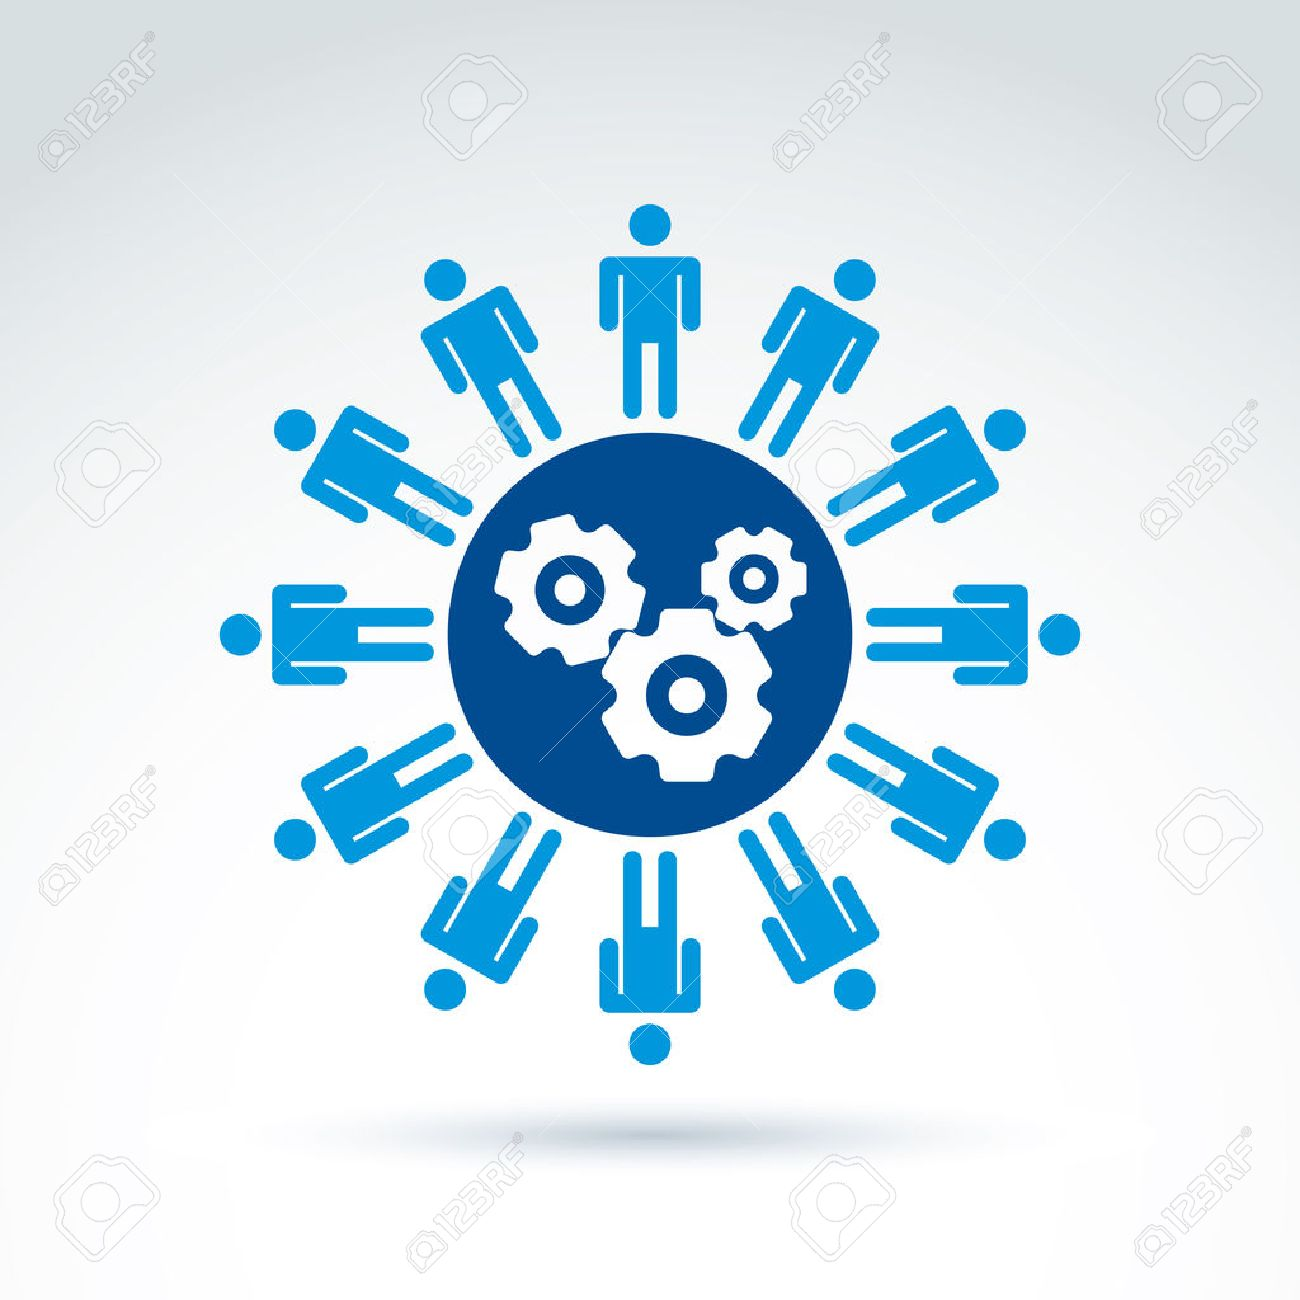 Vector illustration of gears - enterprise system theme, organization strategy concept. Cog-wheels, moving parts and people – components of manufacturing process. - 43234323